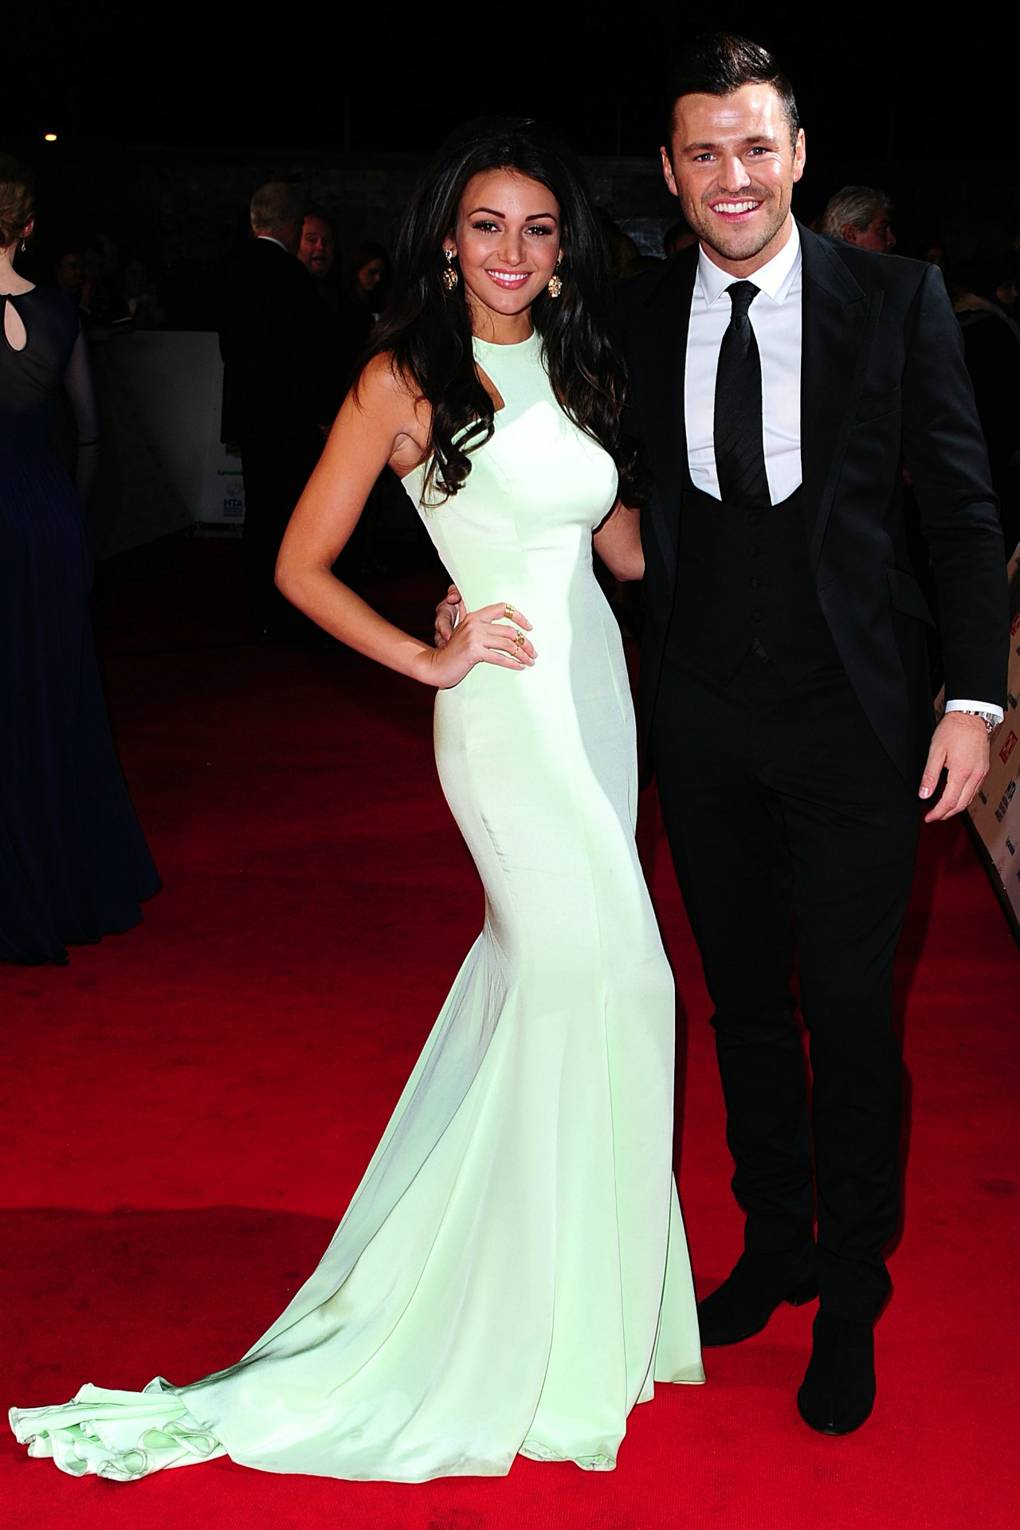 Mark Wright & Michelle Keegan's Wedding & Honeymoon: The Dress